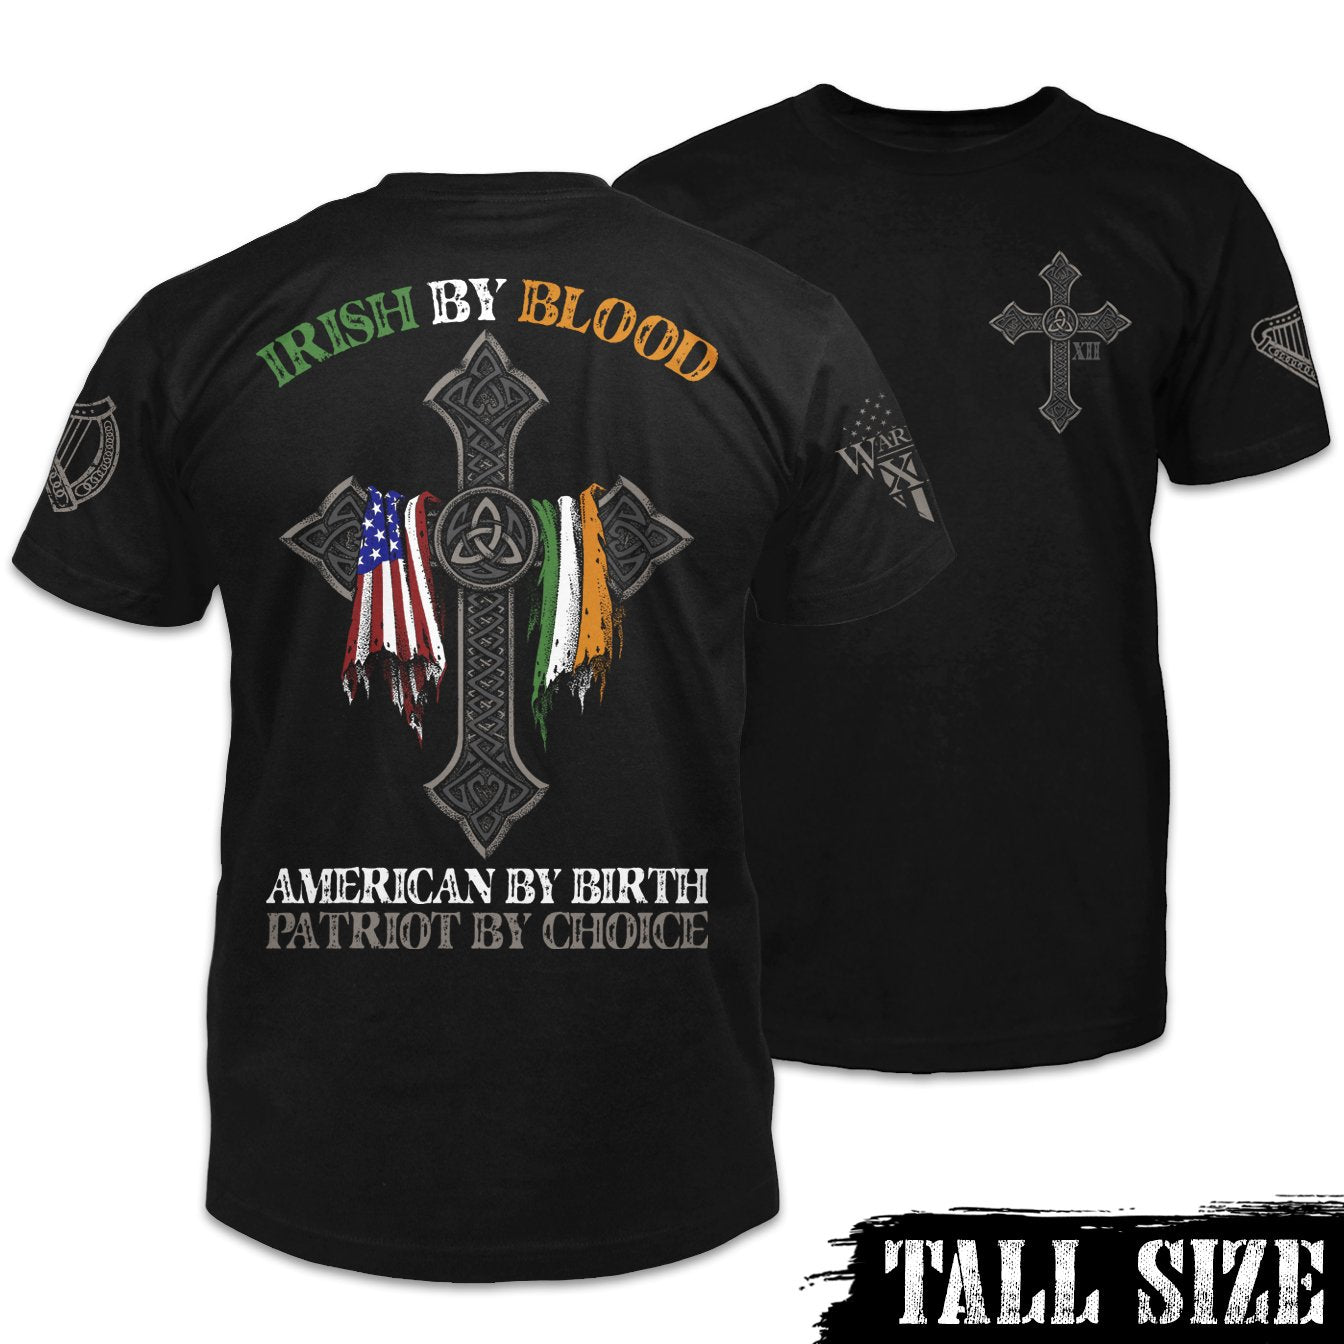 Irish By Blood Shirt Combo Tall Size